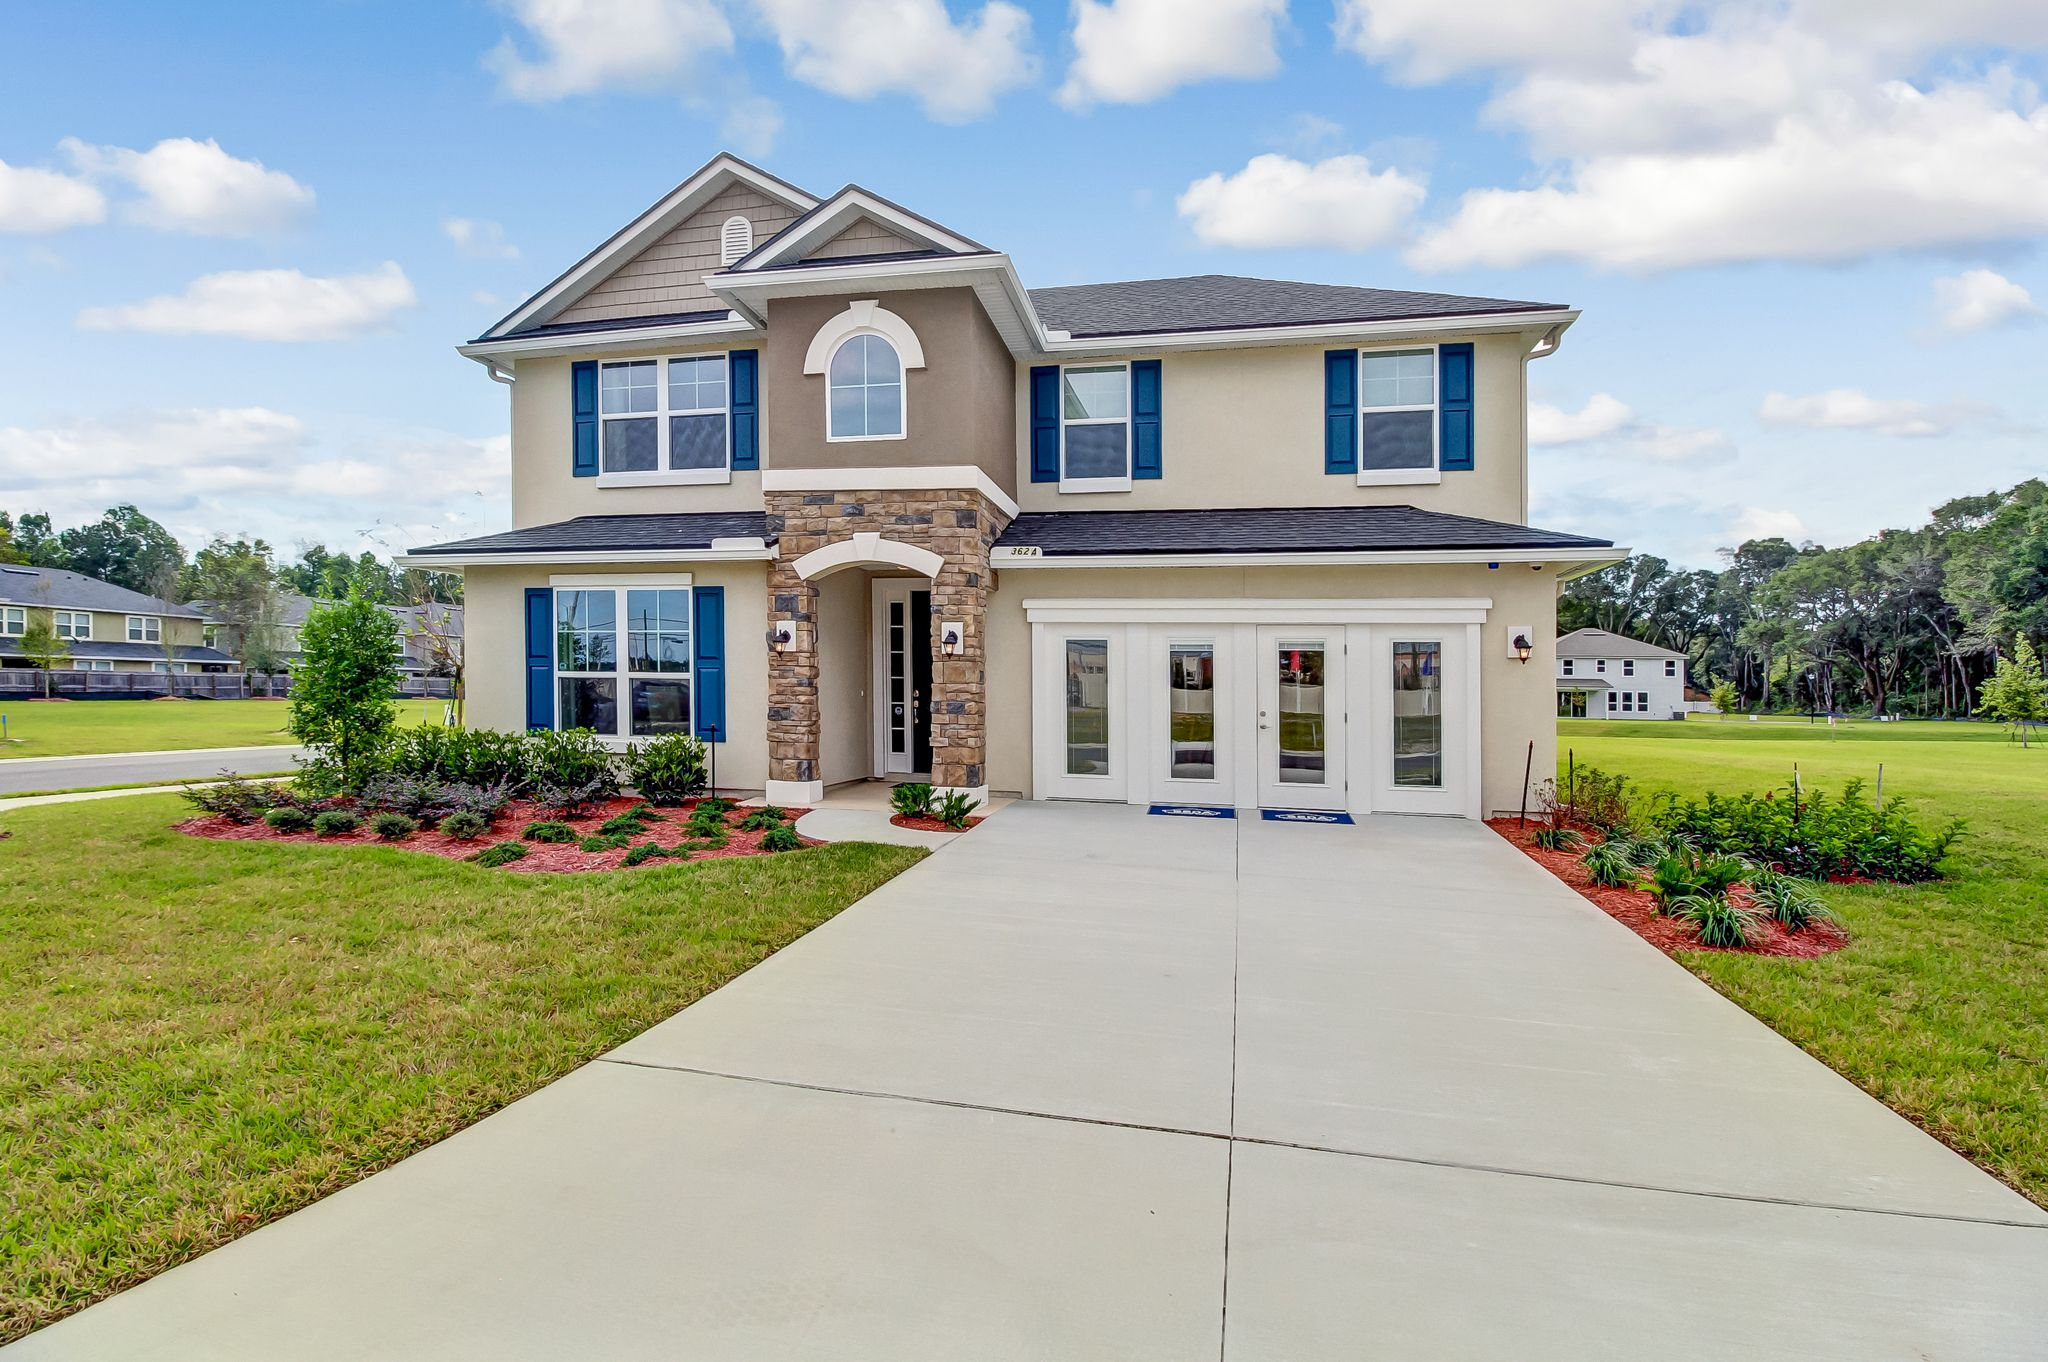 aea374489490205864f7ad0e8cf0cc3a - Better Homes And Gardens Realty Jacksonville Fl